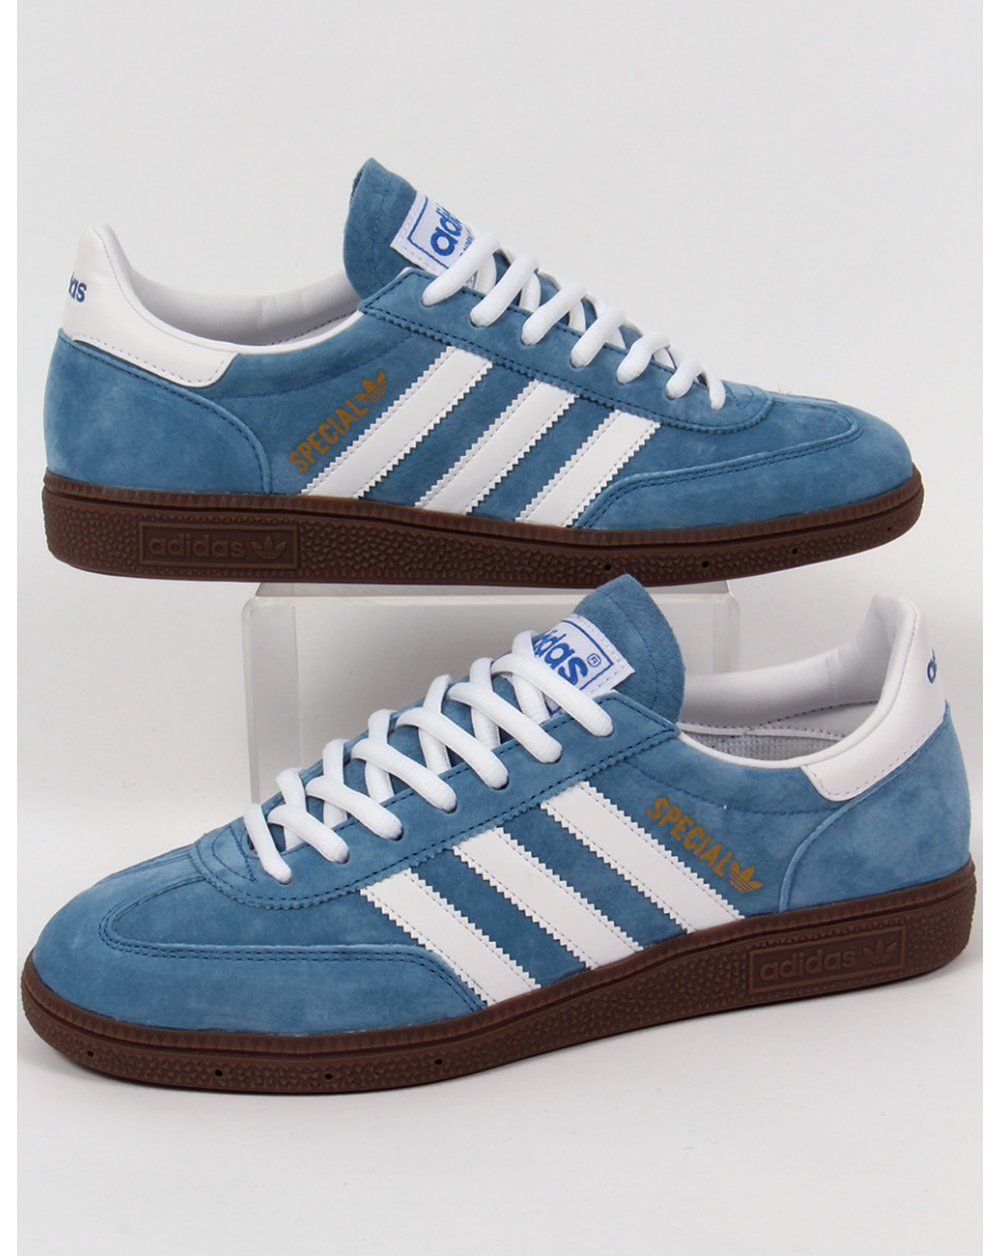 adidas Suede Handball Spezial Shoes in BlueWhite (Blue) for